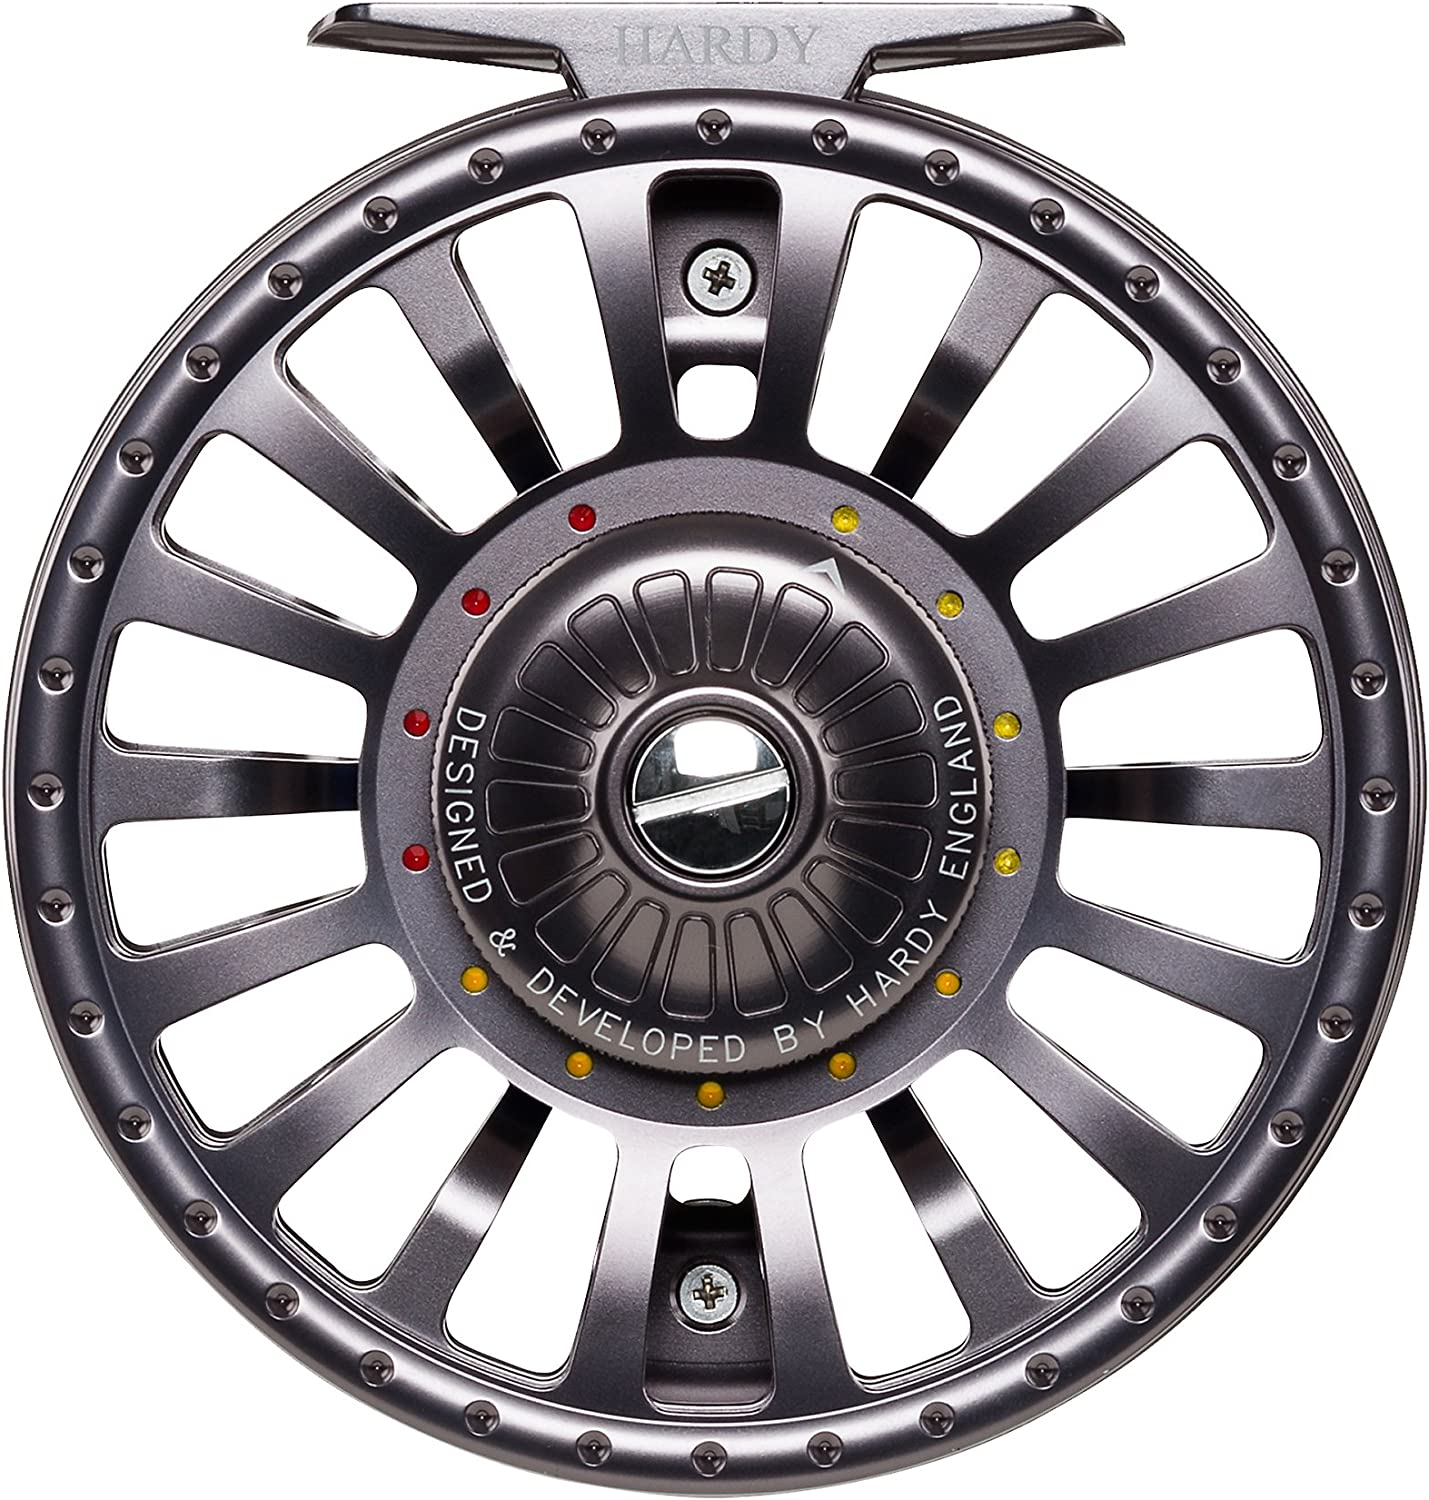 2. Hardy Fortuna XDS Fly Reel - Best Capacity